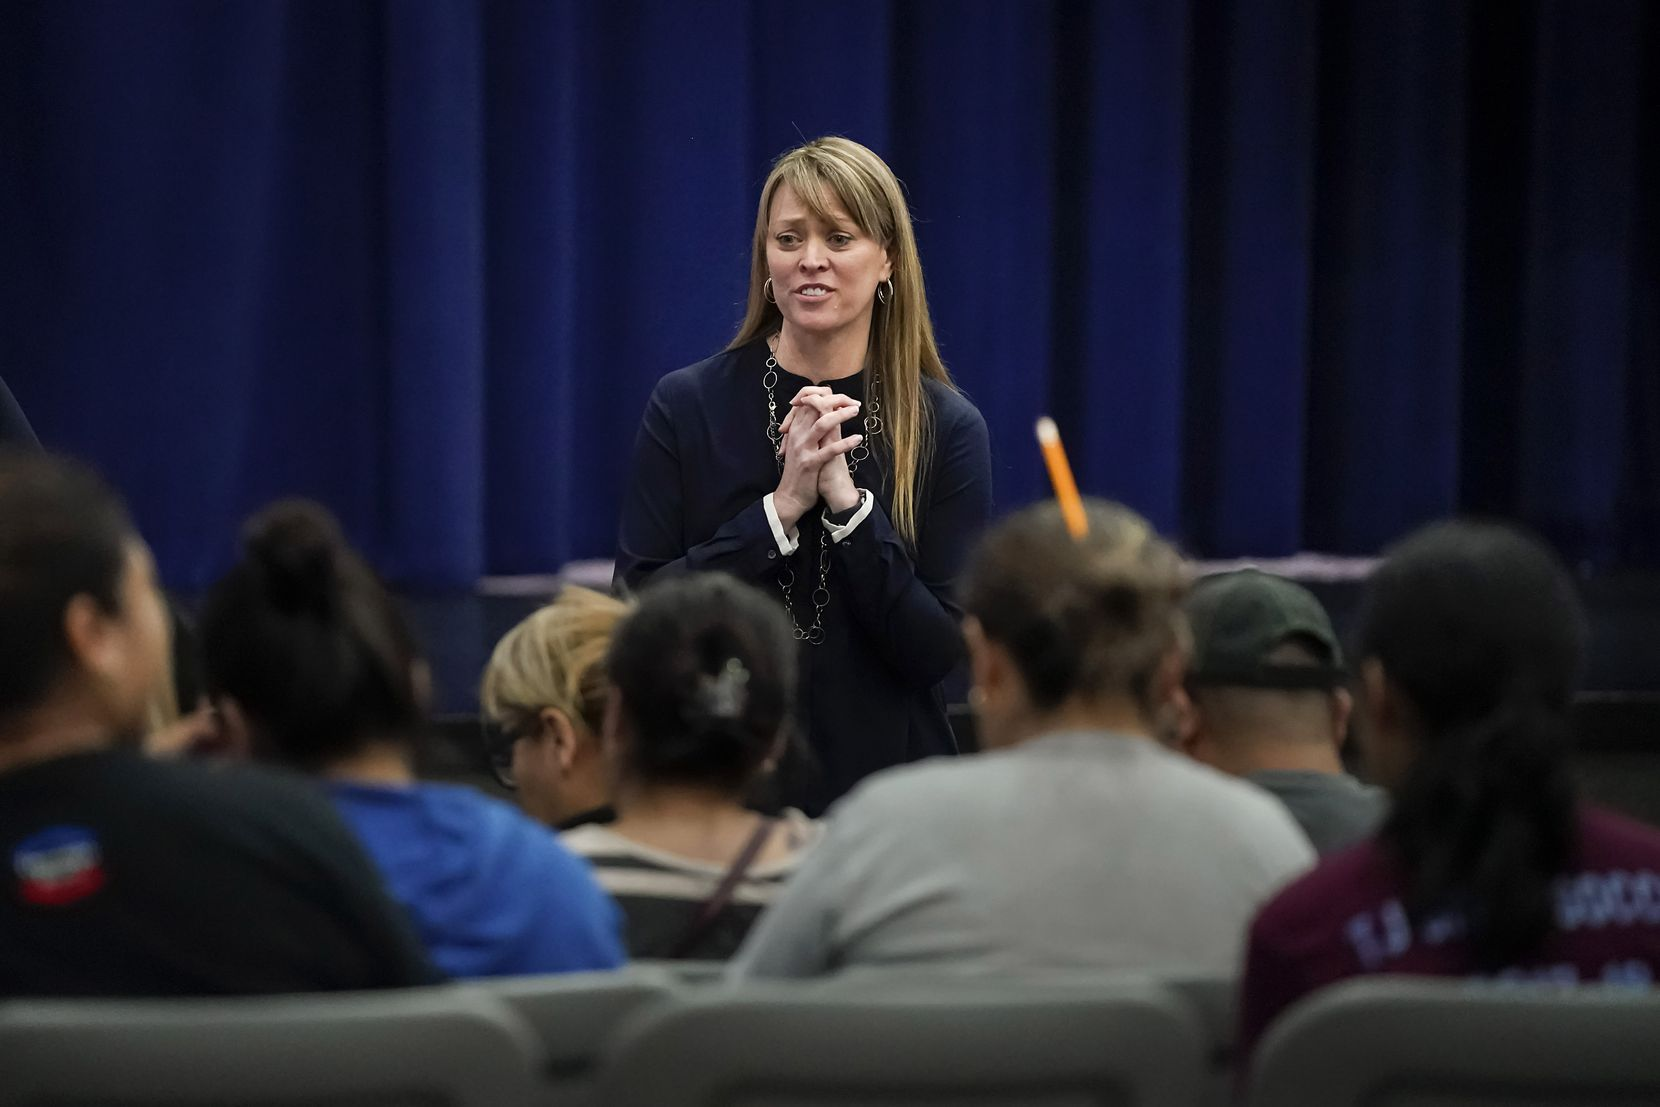 Principal Sandi Massey met with concerned parents for almost an hour Tuesday after the initial community meeting about plans for the renovated Thomas Jefferson campus after the Oct. 20 tornado.